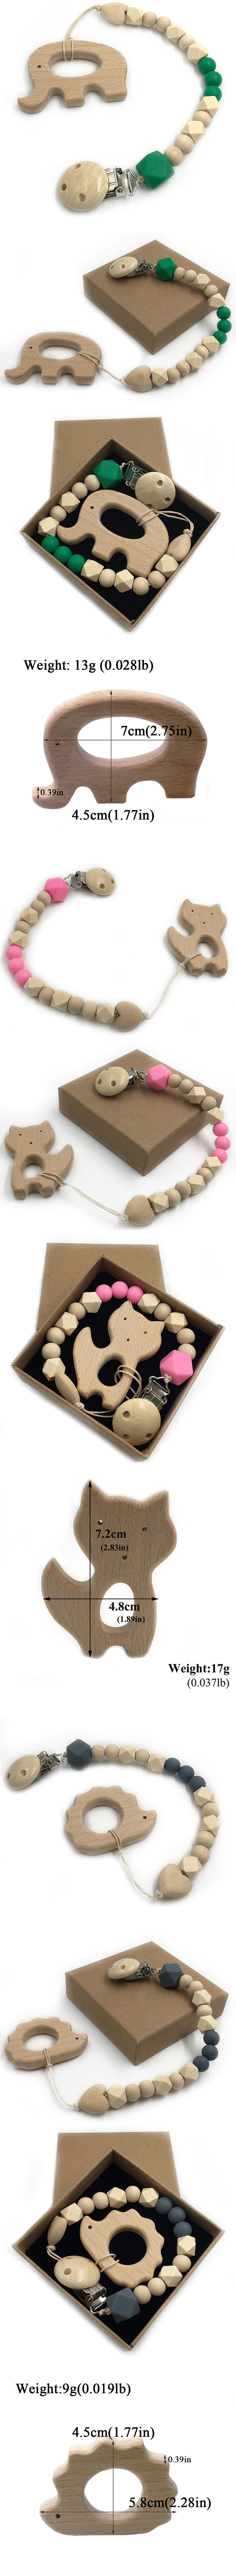 2pcs-set Animal Shape Natural Teething Grasping Toy Bead Toddler Organic Silicone Wooden Baby Teether